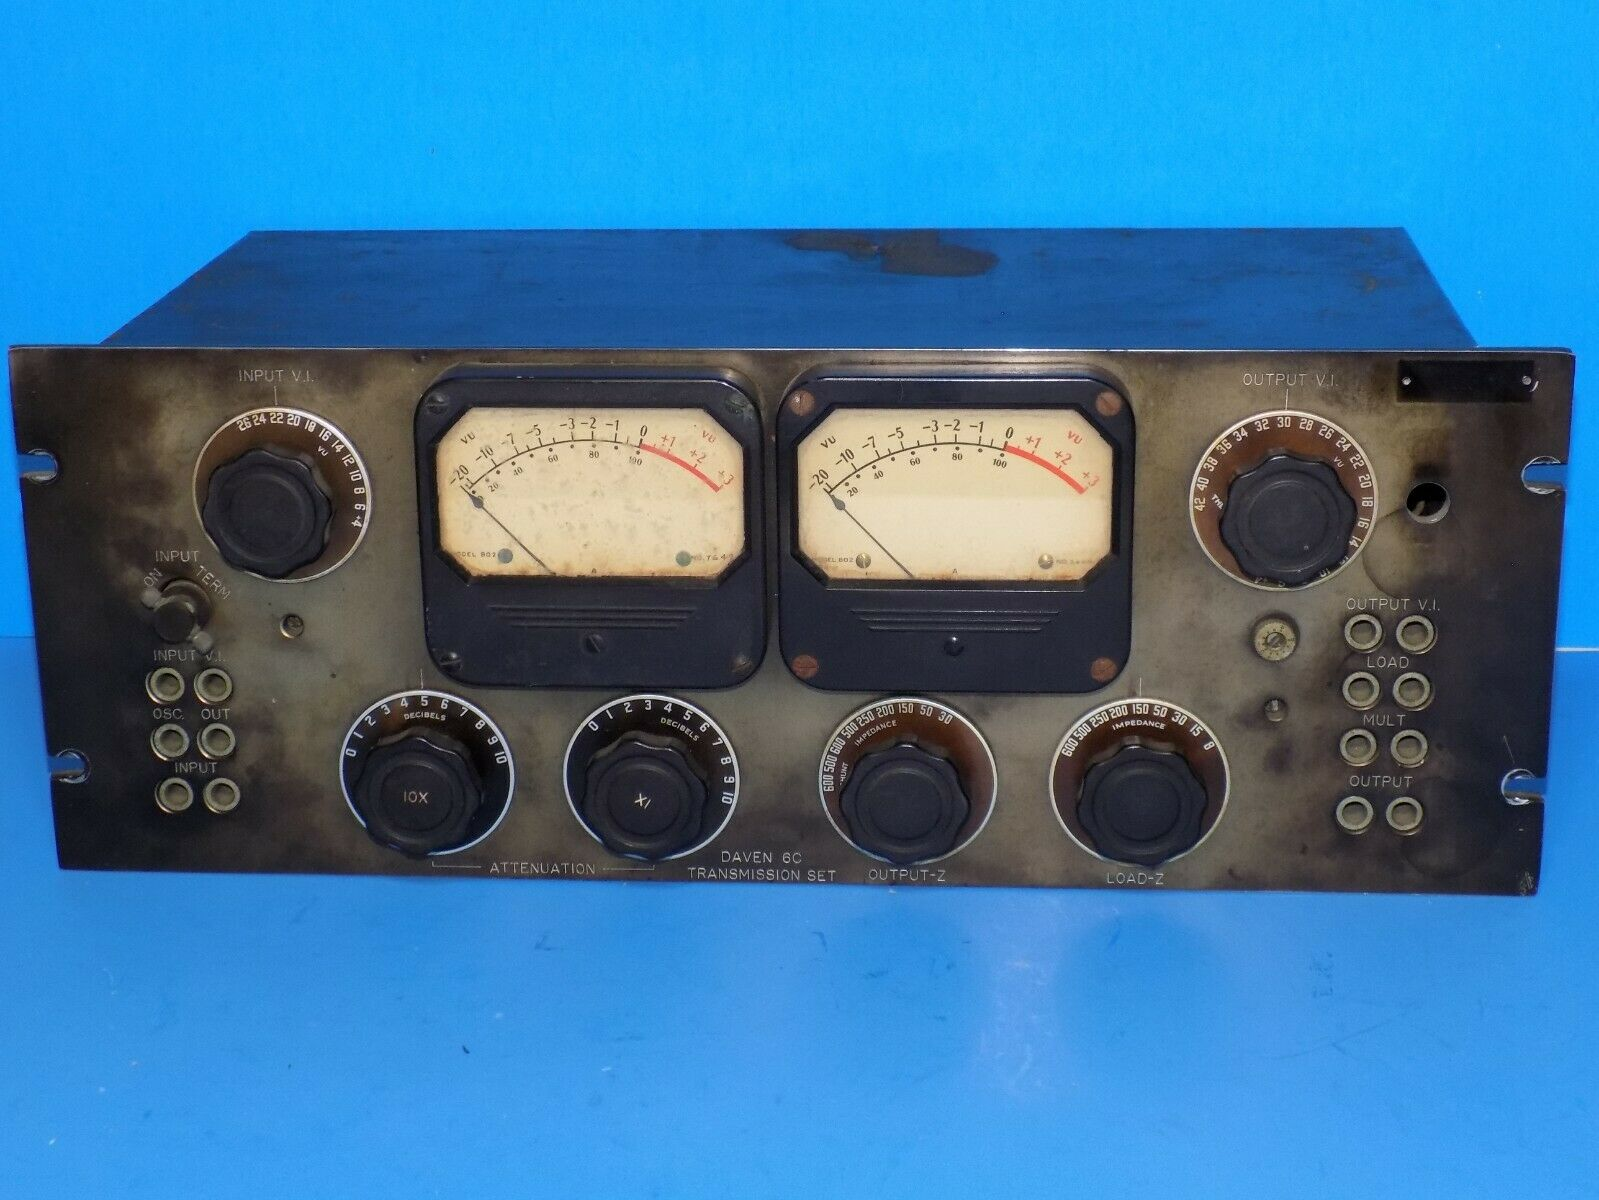 DAVEN WESTERN ELECTRIC LANGEVIN 6C TRANSMISSION  ATTENUATOR MEASURING PANEL